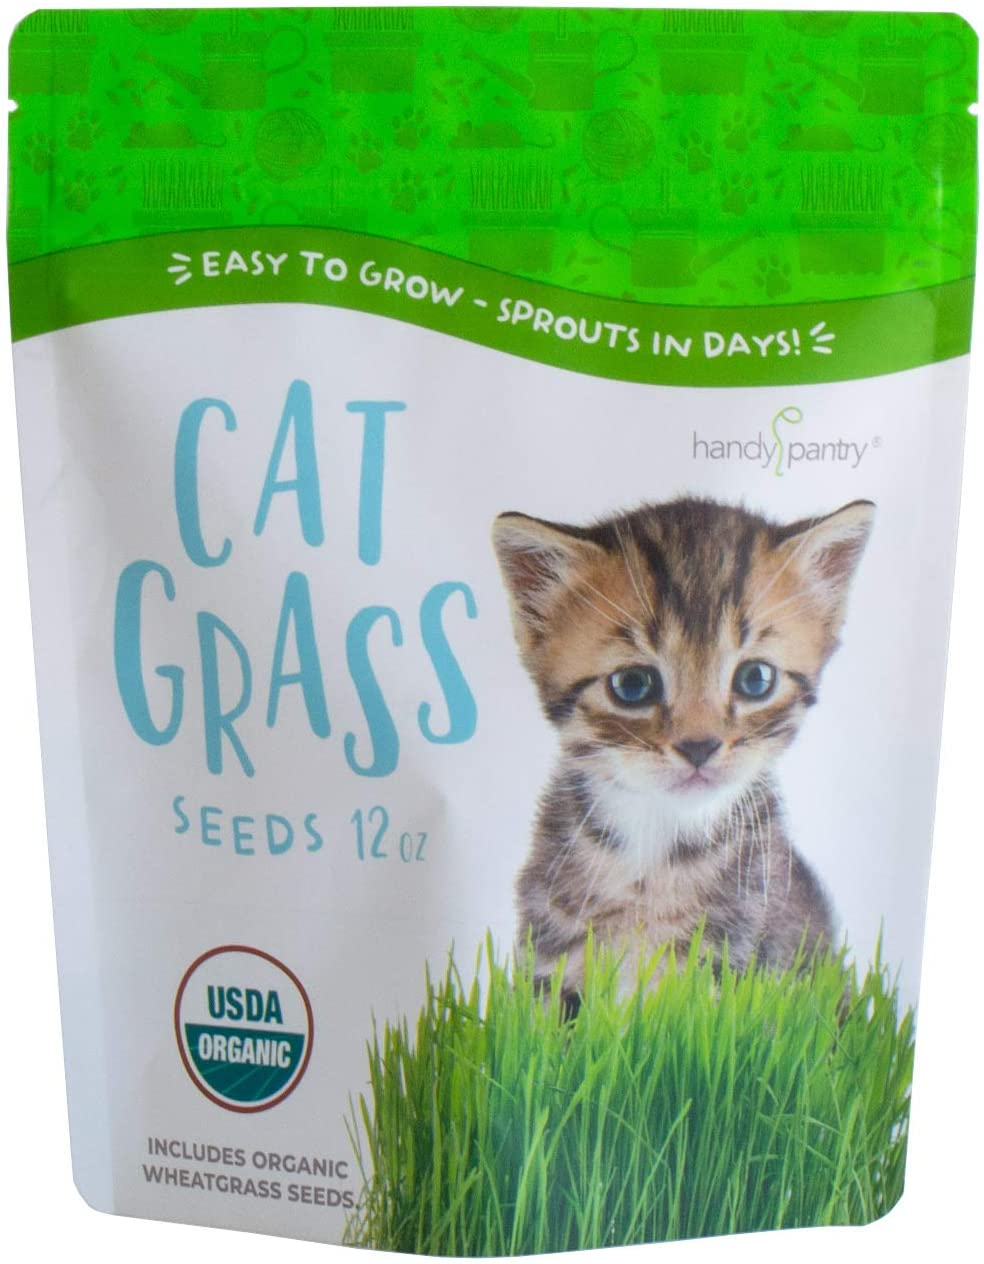 Certified Organic Cat Grass Seeds by Handy Pantry - Non-GMO Wheatgrass Seeds for Cats, Dogs, Rabbits, Pets - Wheat Grass Hairball Remedy for Cats - Hard Red Wheat for Your Home Cat Grass Kit (12 oz.)